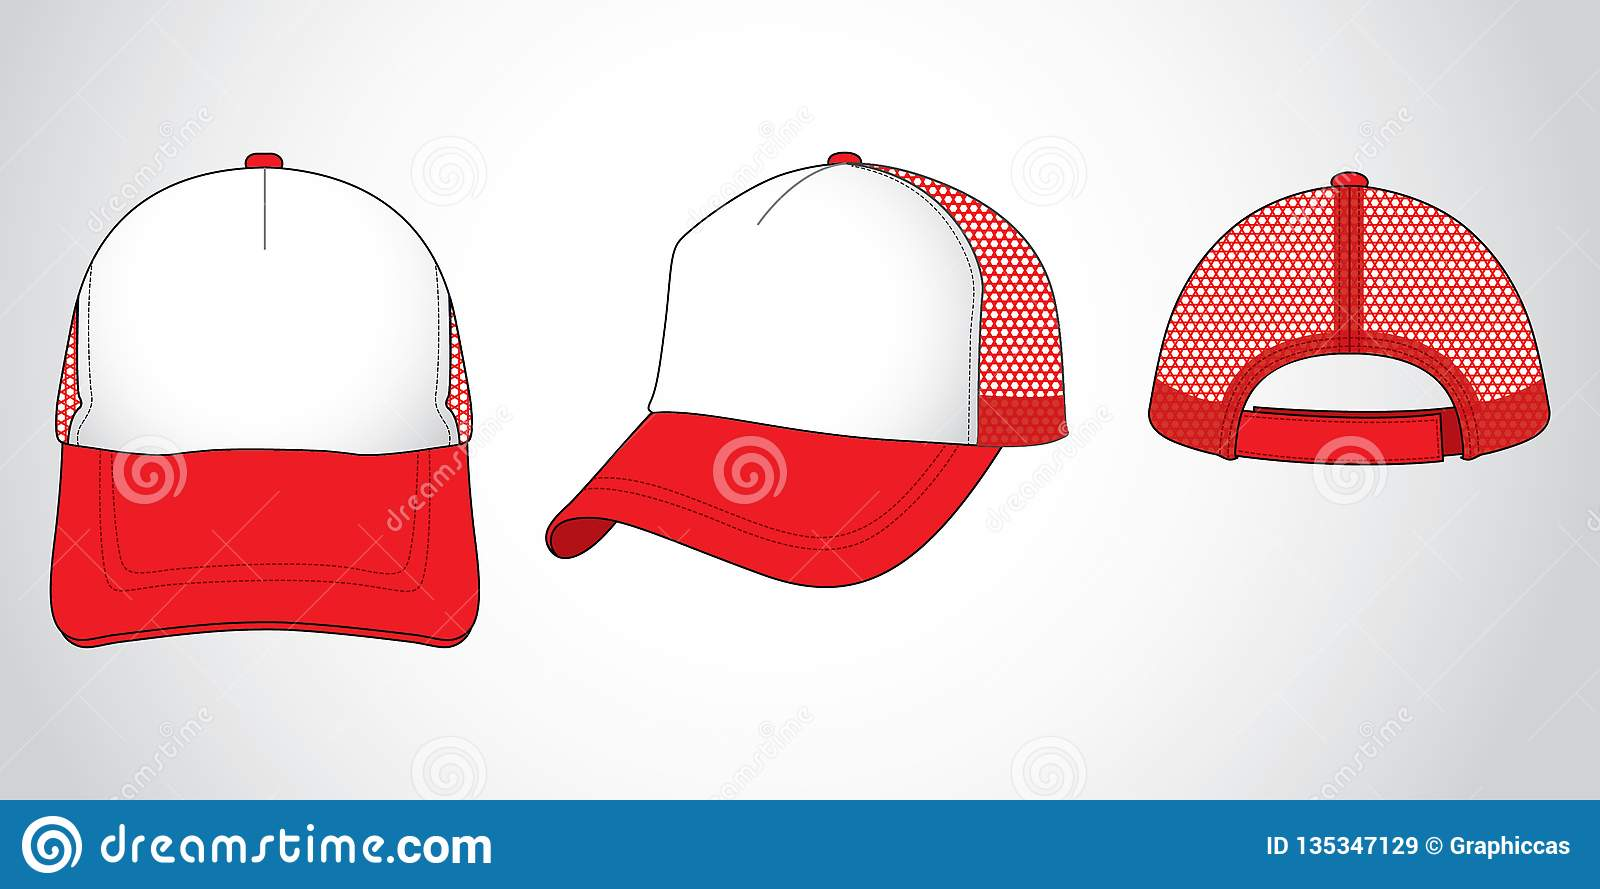 be504536 Front, back and side view - 5 panel cap - Mesh Material - Vector file -  Garment - Set - Unisex - Sports - Two tone. More similar stock illustrations